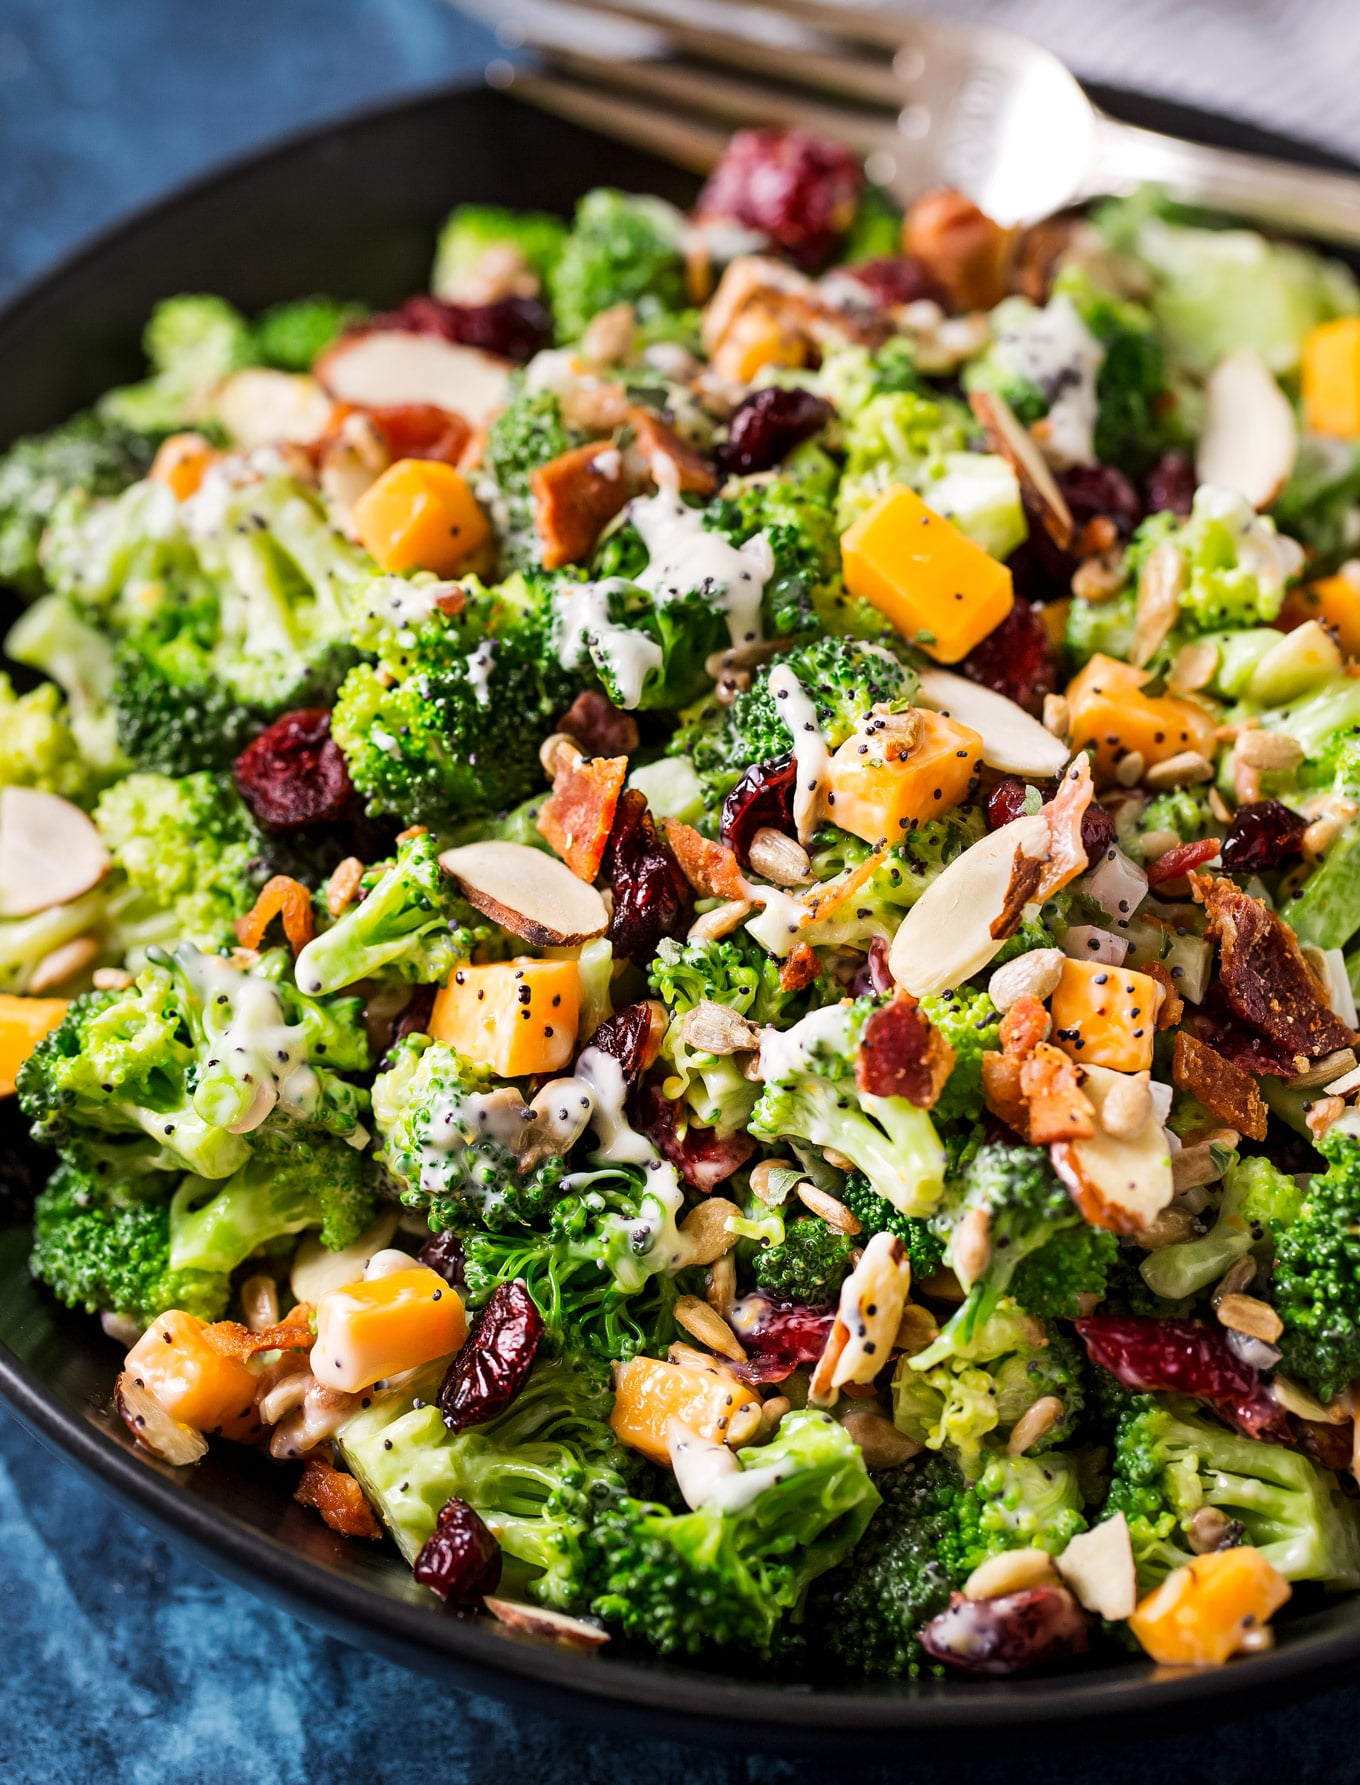 Broccoli Salad Recipe Make Ahead Potluck Side The Chunky Chef